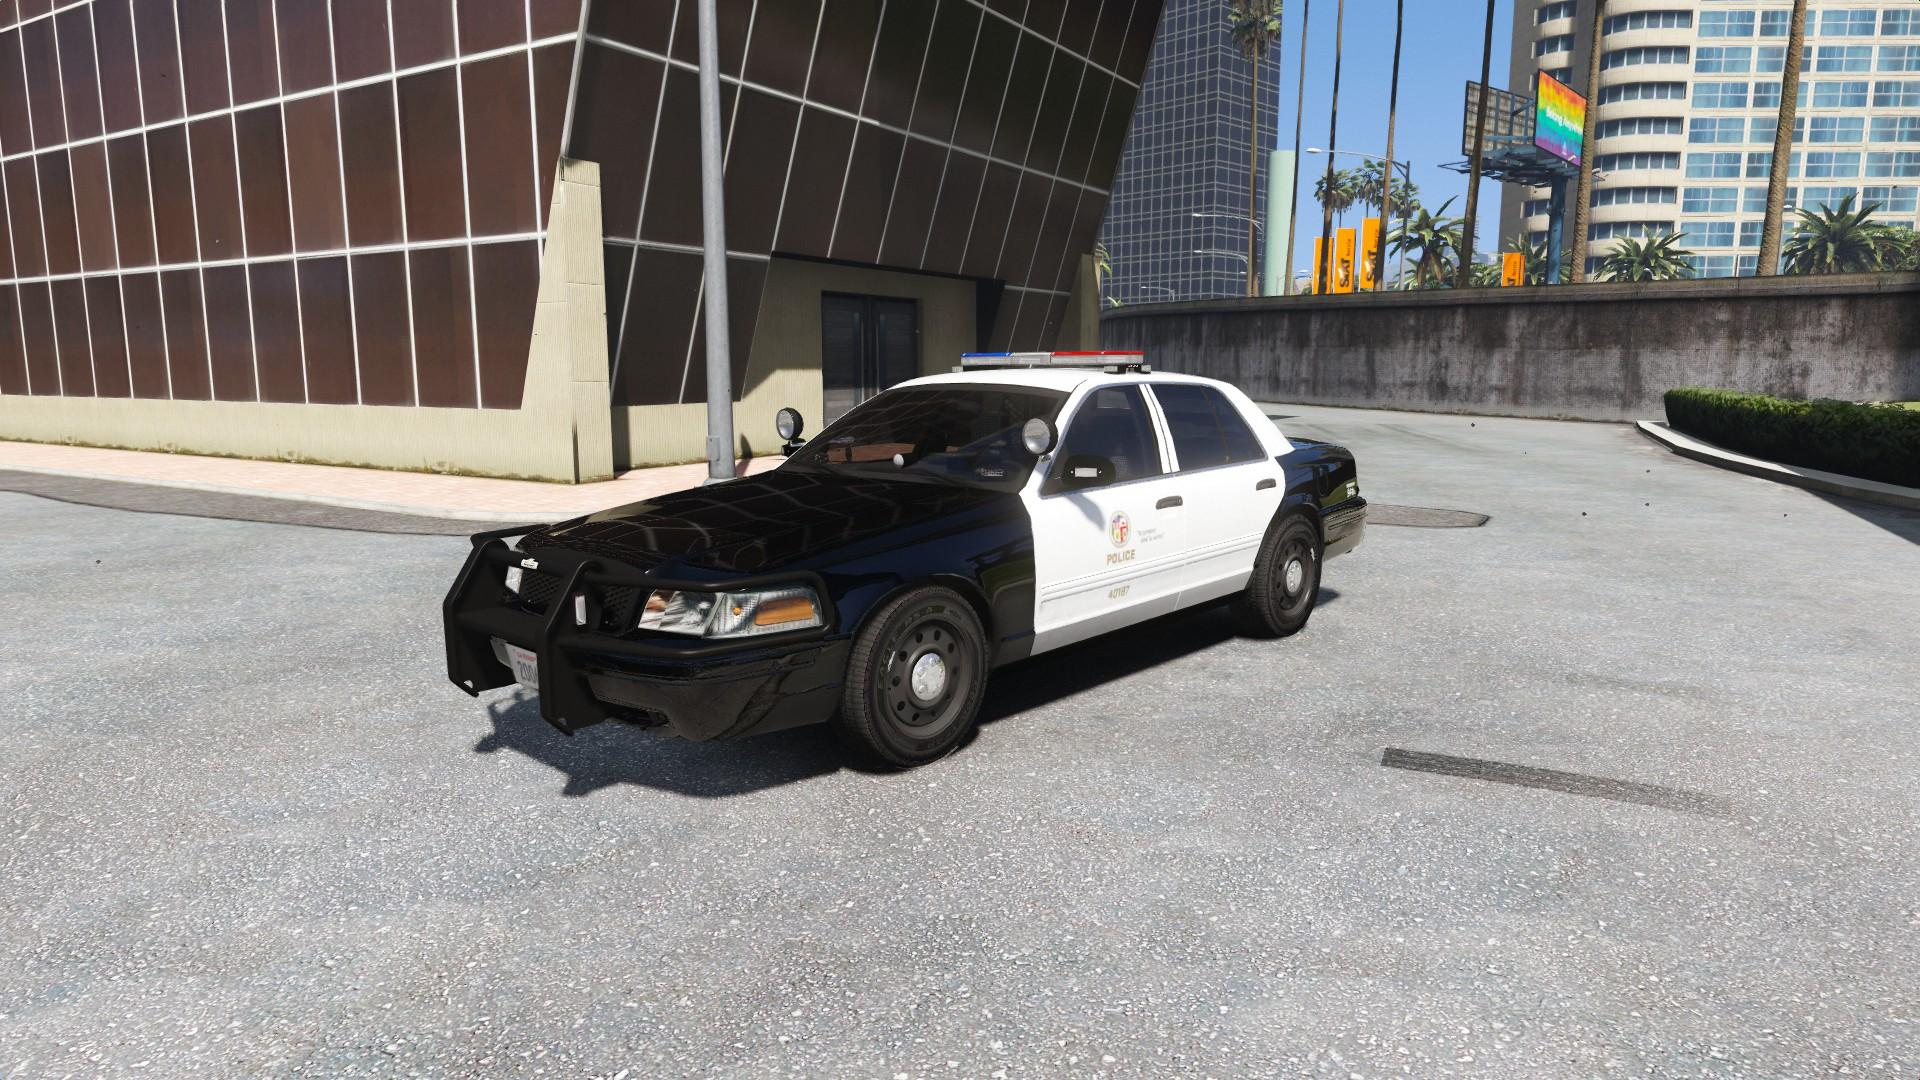 Los Angeles Police Department Lapd Texture Pack 4k